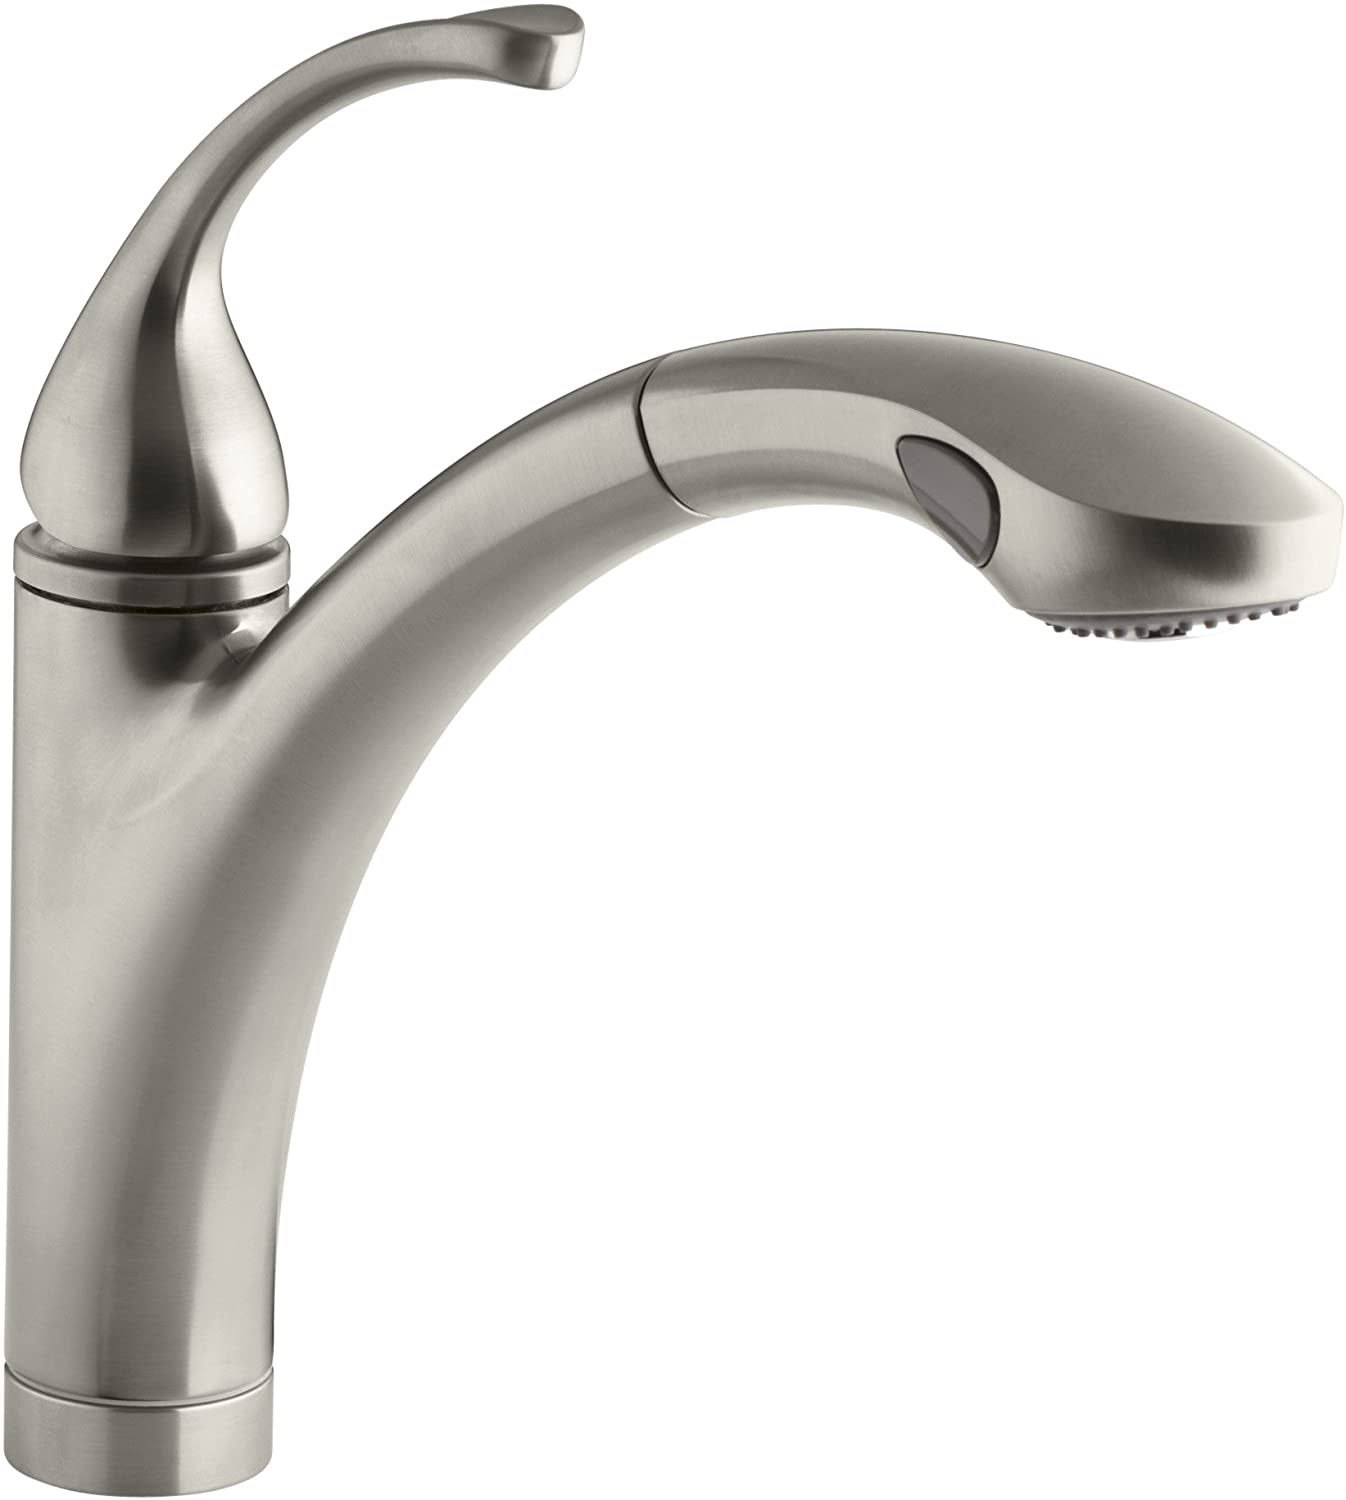 Kohler K 10433 Bn Forte Single Control Pull Out Kitchen Sink Faucet Single Lever Handle 1 Hole Or 3 Hole Installation Brushed Nickel 2 Function Spray Head Vibrant Brushed Nickel Touch On Kitchen Sink Faucets Amazon Com